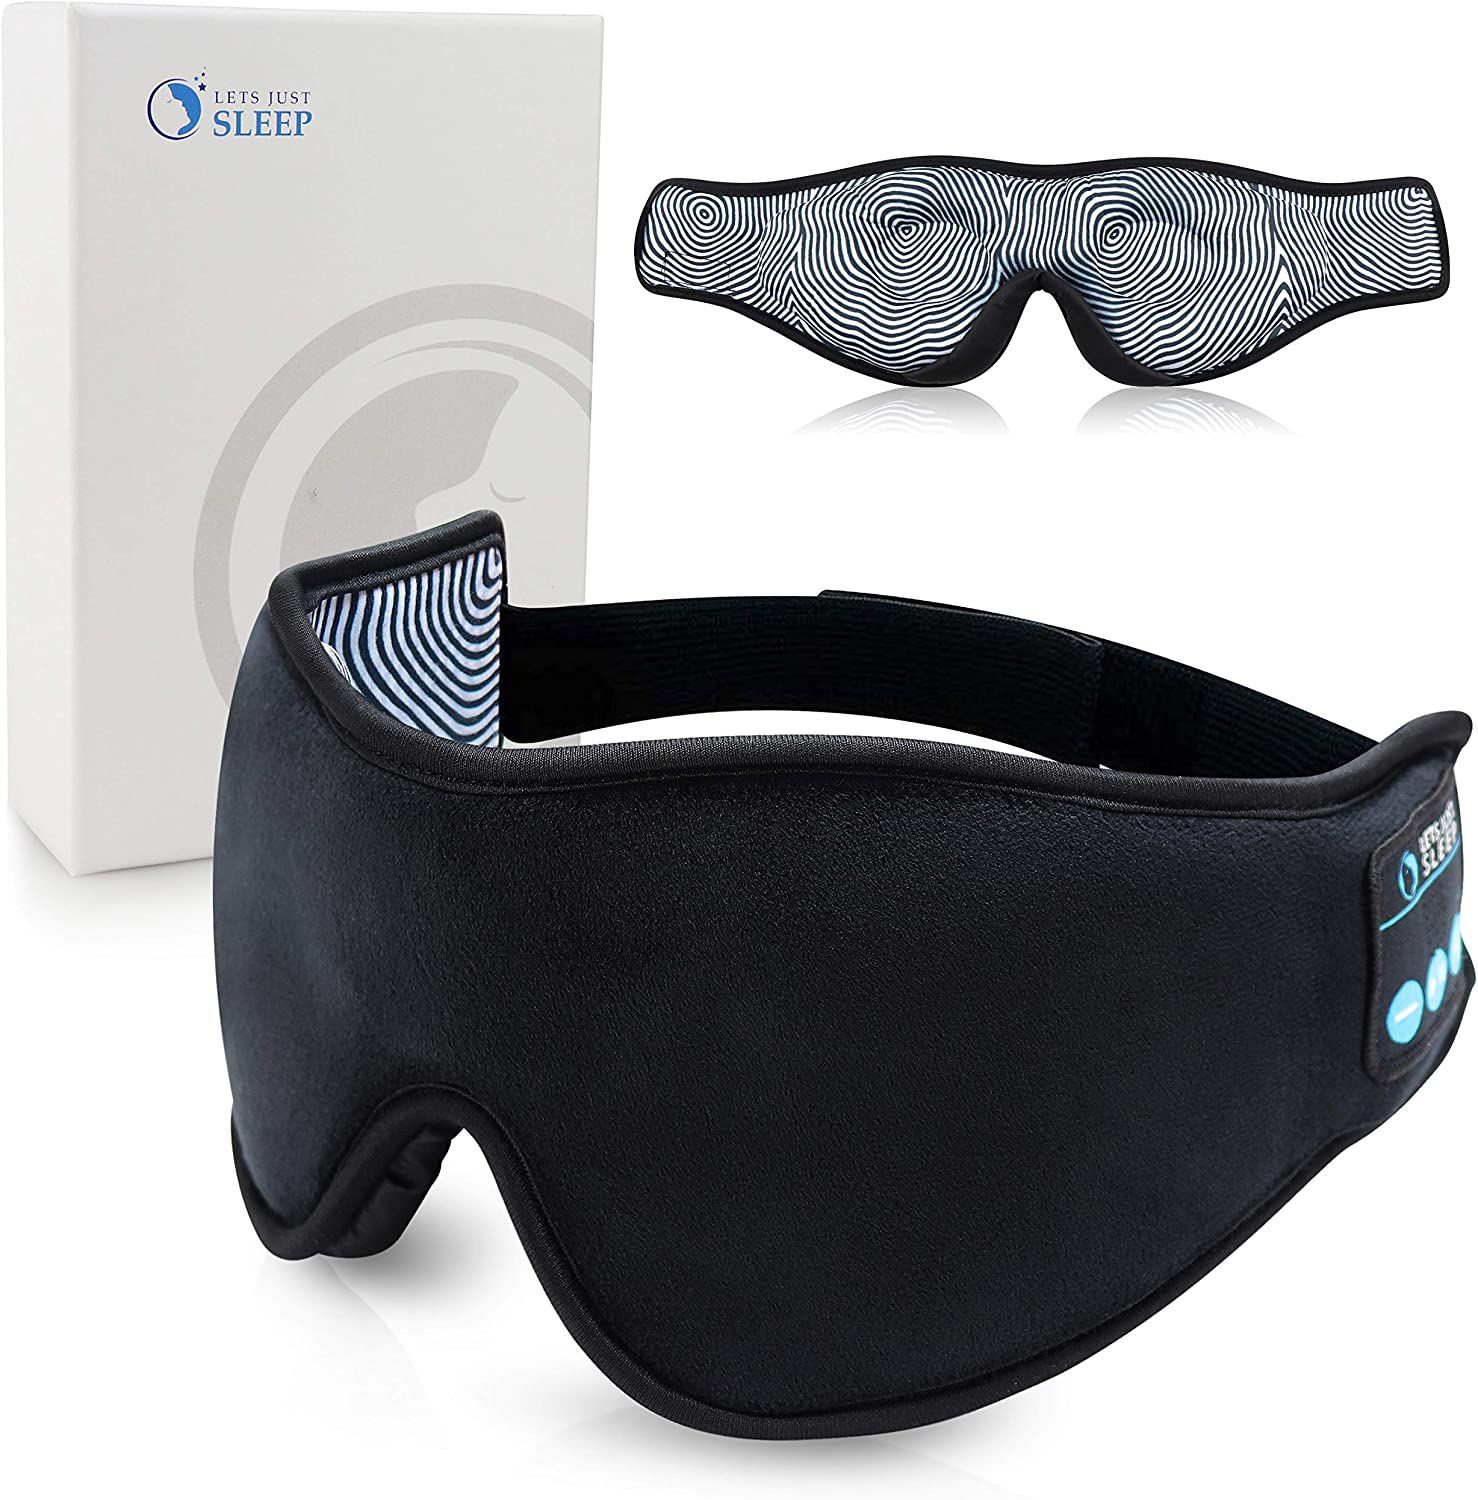 The Sleep Mask Headphones travel product recommended by Brody Elkins on Lifney.